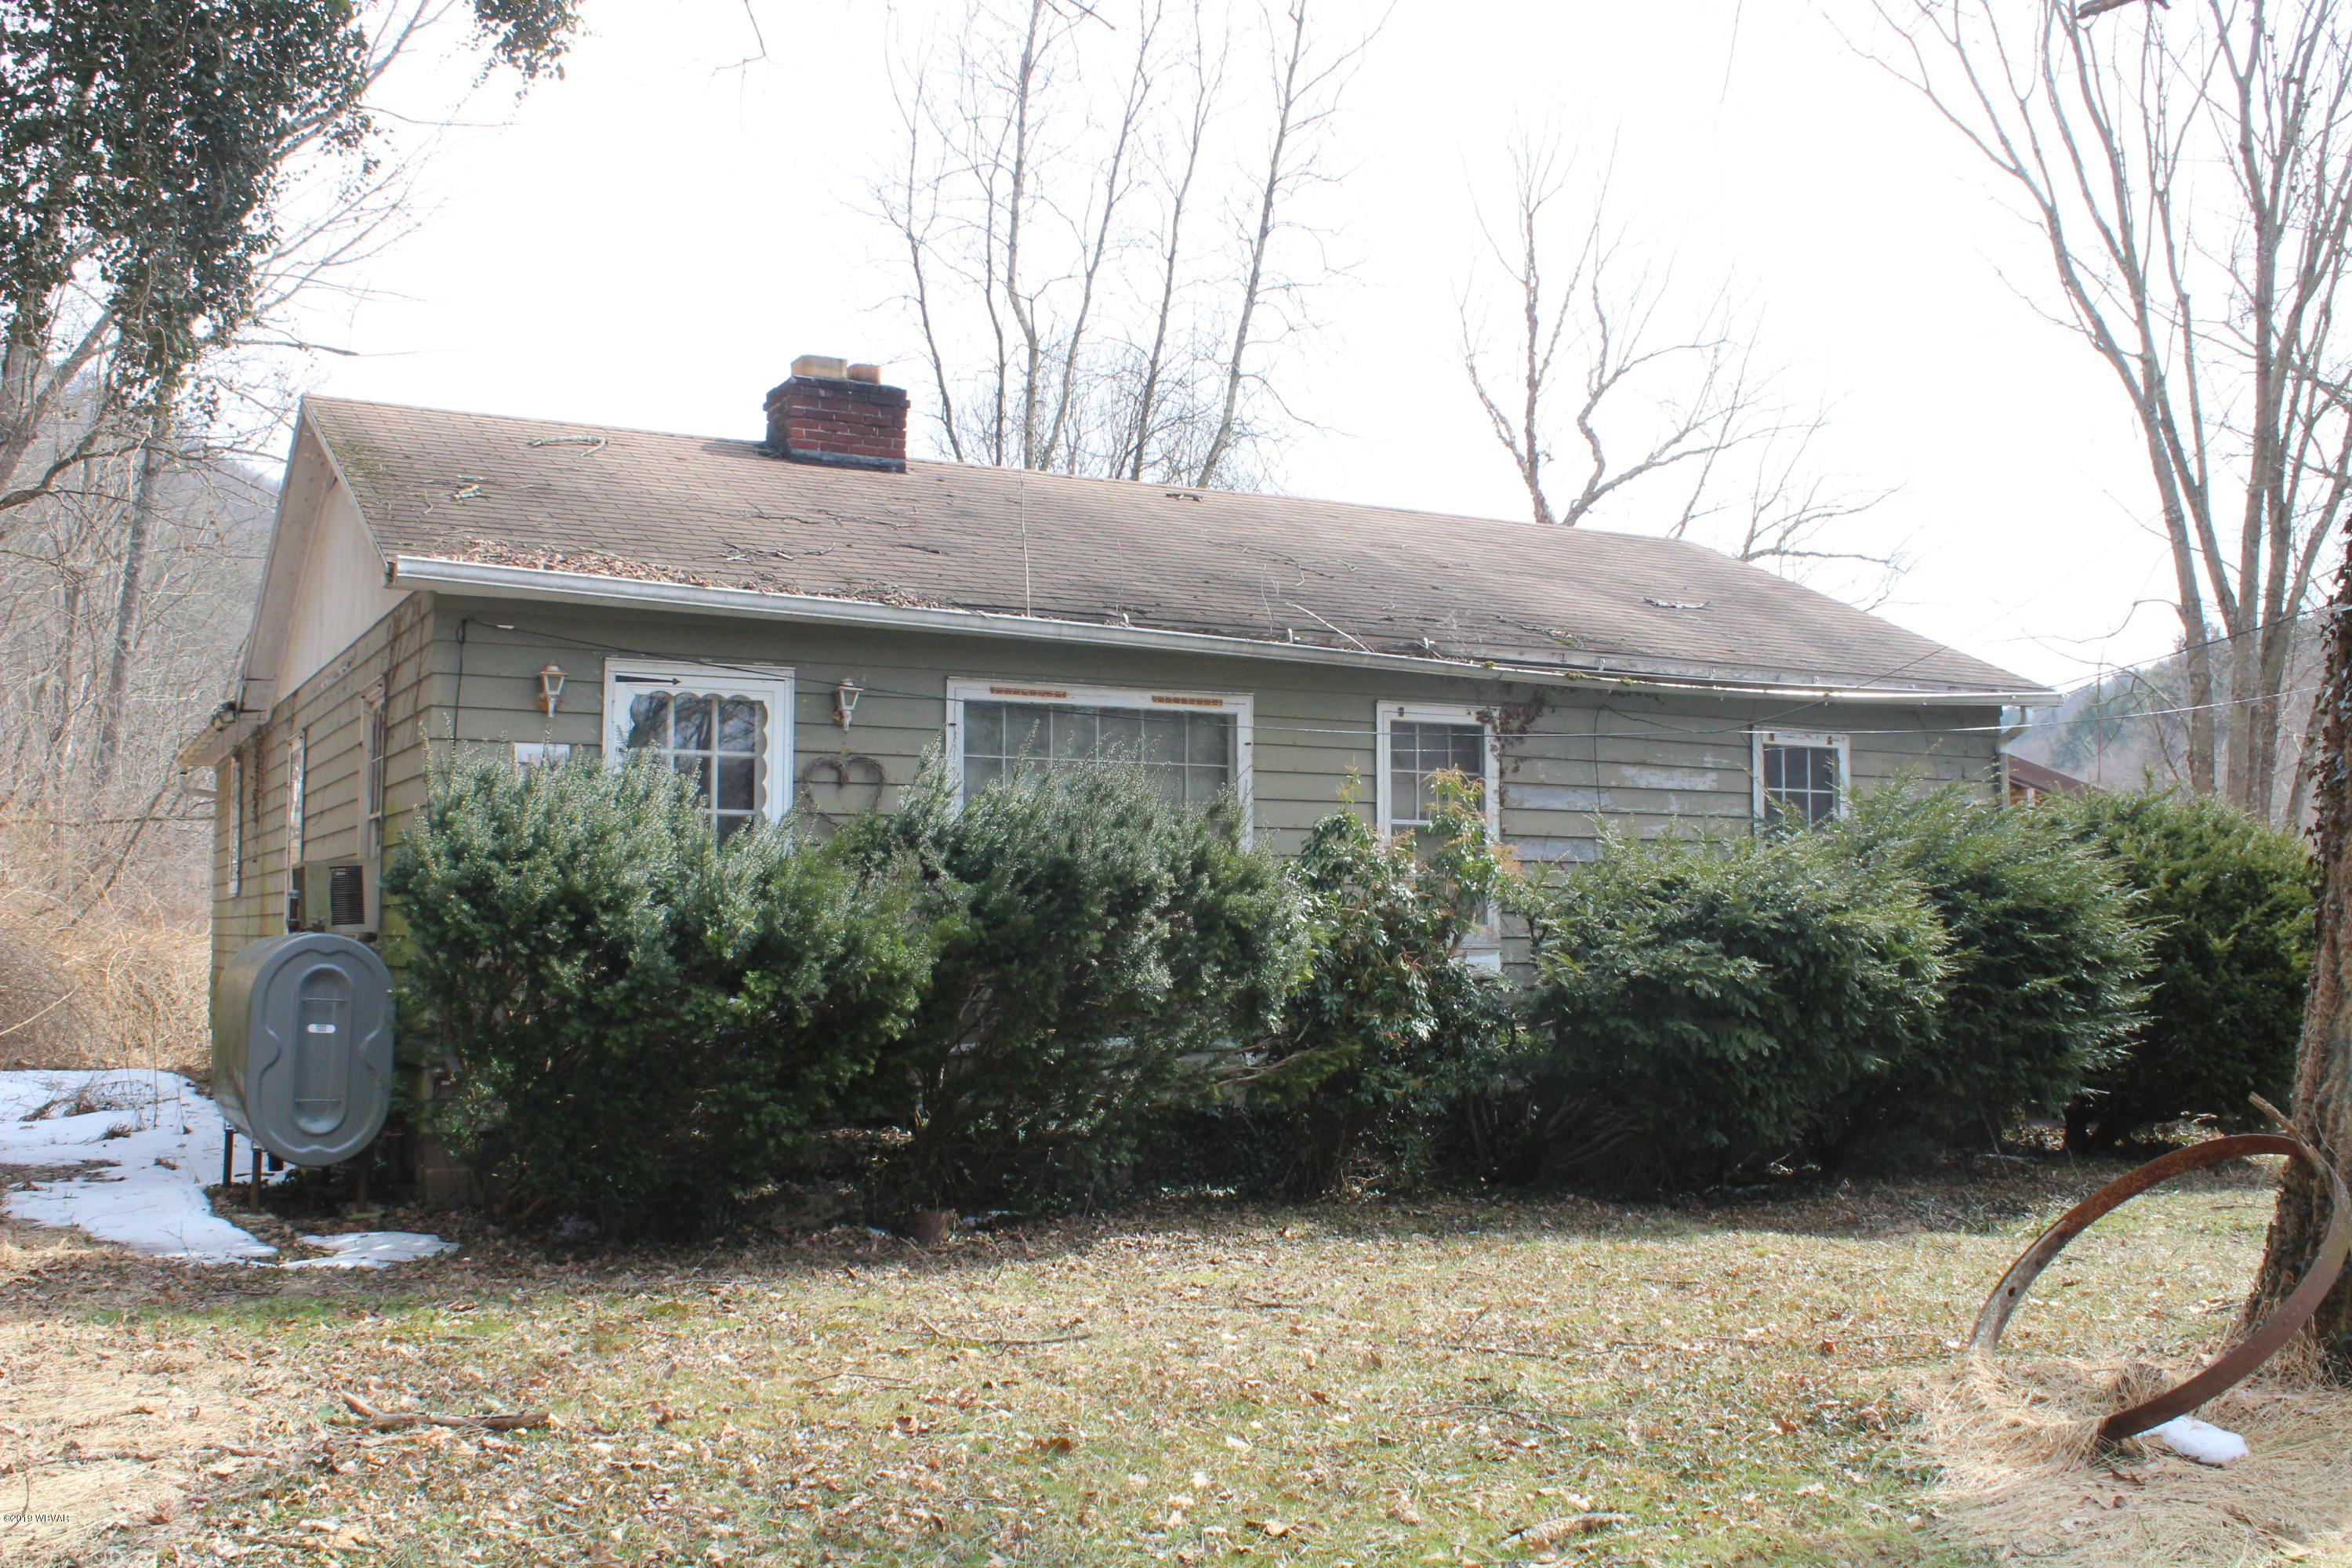 722 ROUTE 864 HIGHWAY,Montoursville,PA 17754,3 Bedrooms Bedrooms,1 BathroomBathrooms,Residential,ROUTE 864,WB-86709